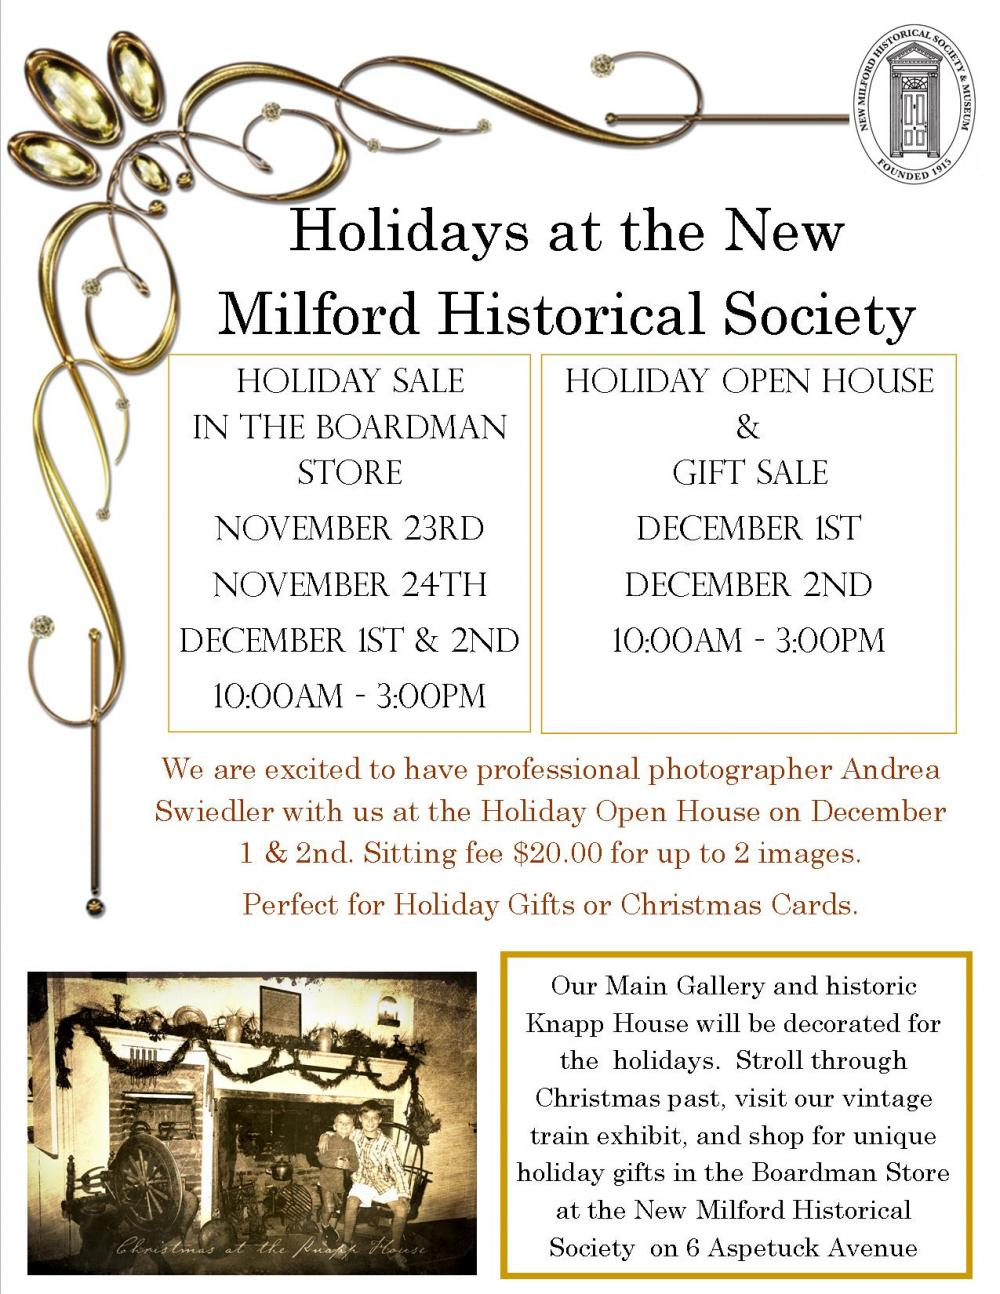 Holiday sale in the Boardman Store  November 23 and 24 December 1 and 2 10am - 3pm  The main gallery and the Knapp House will be decorated for the Holidays. Stroll through Christmas Past, visit our vintage train exhibit, and shop for unique Holiday gifts in the Boardman Store  Professional photographer Andrea Swiedler joins us on December 1 and 2. Get up to 2 images for a $20 sitting fee, perfect for Holiday cards!